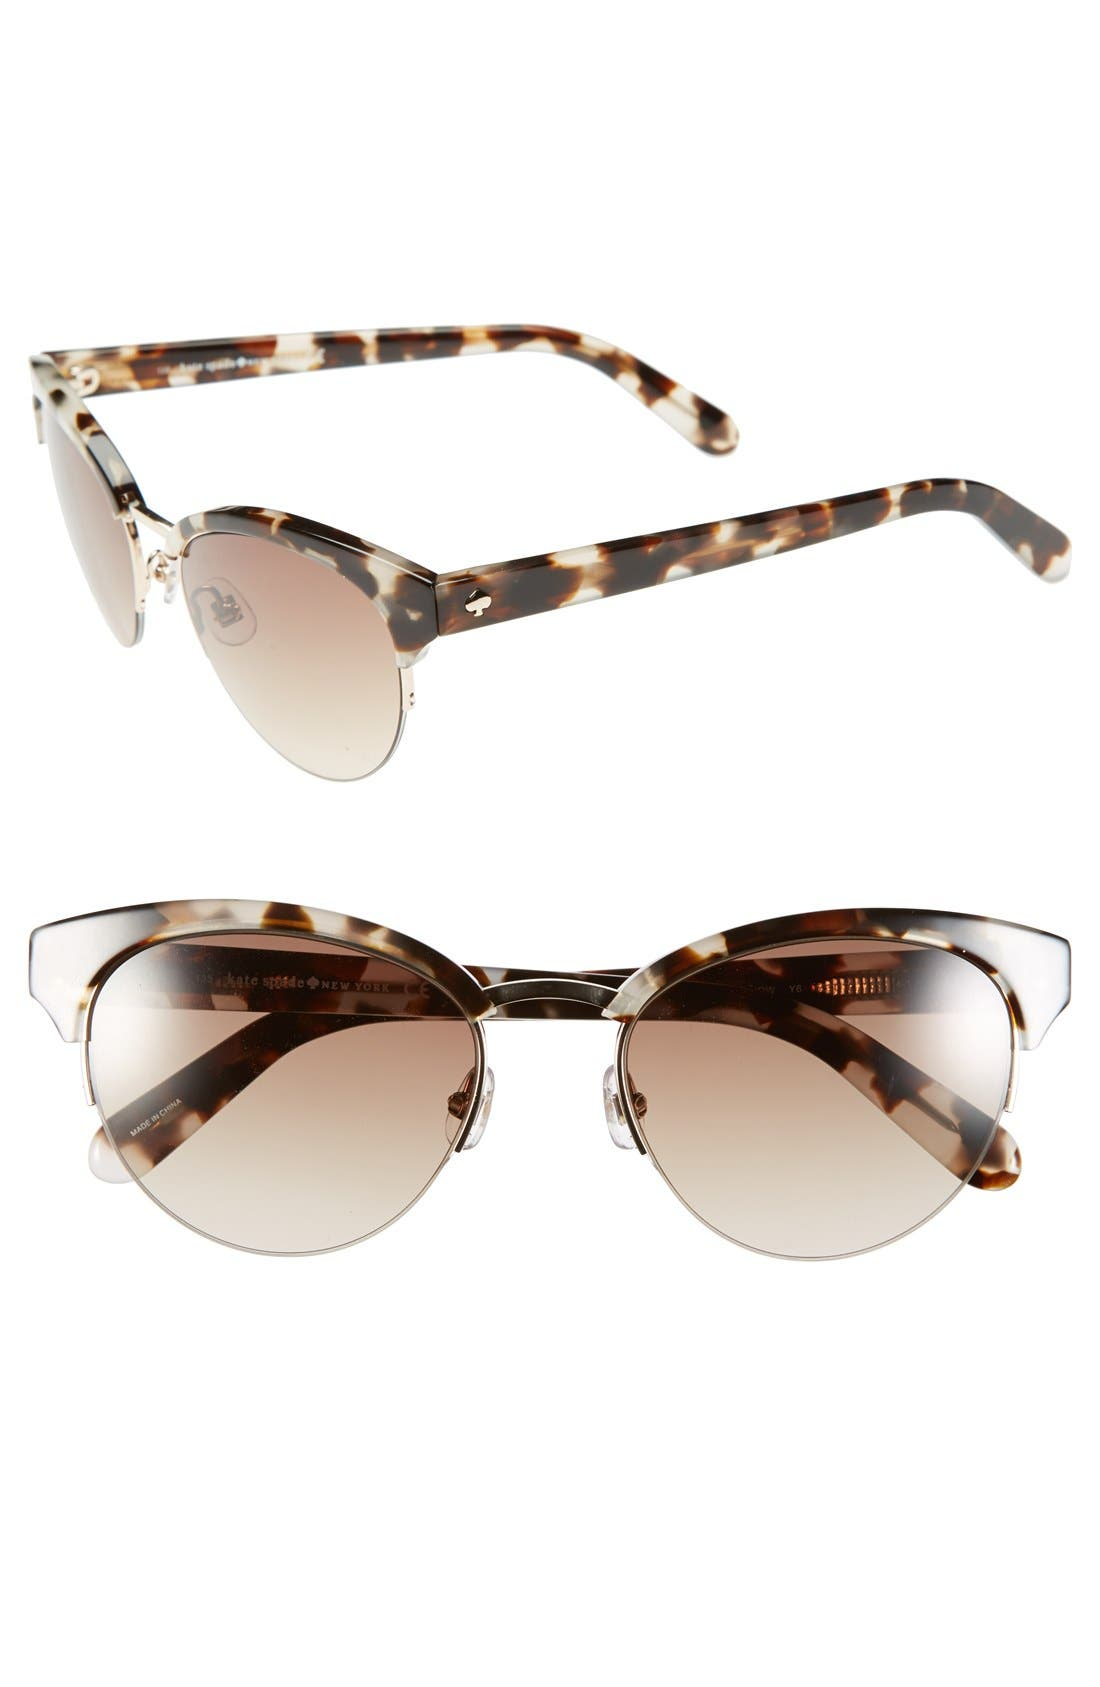 Alternate Image 1 Selected - kate spade new york 53mm cat eye sunglasses